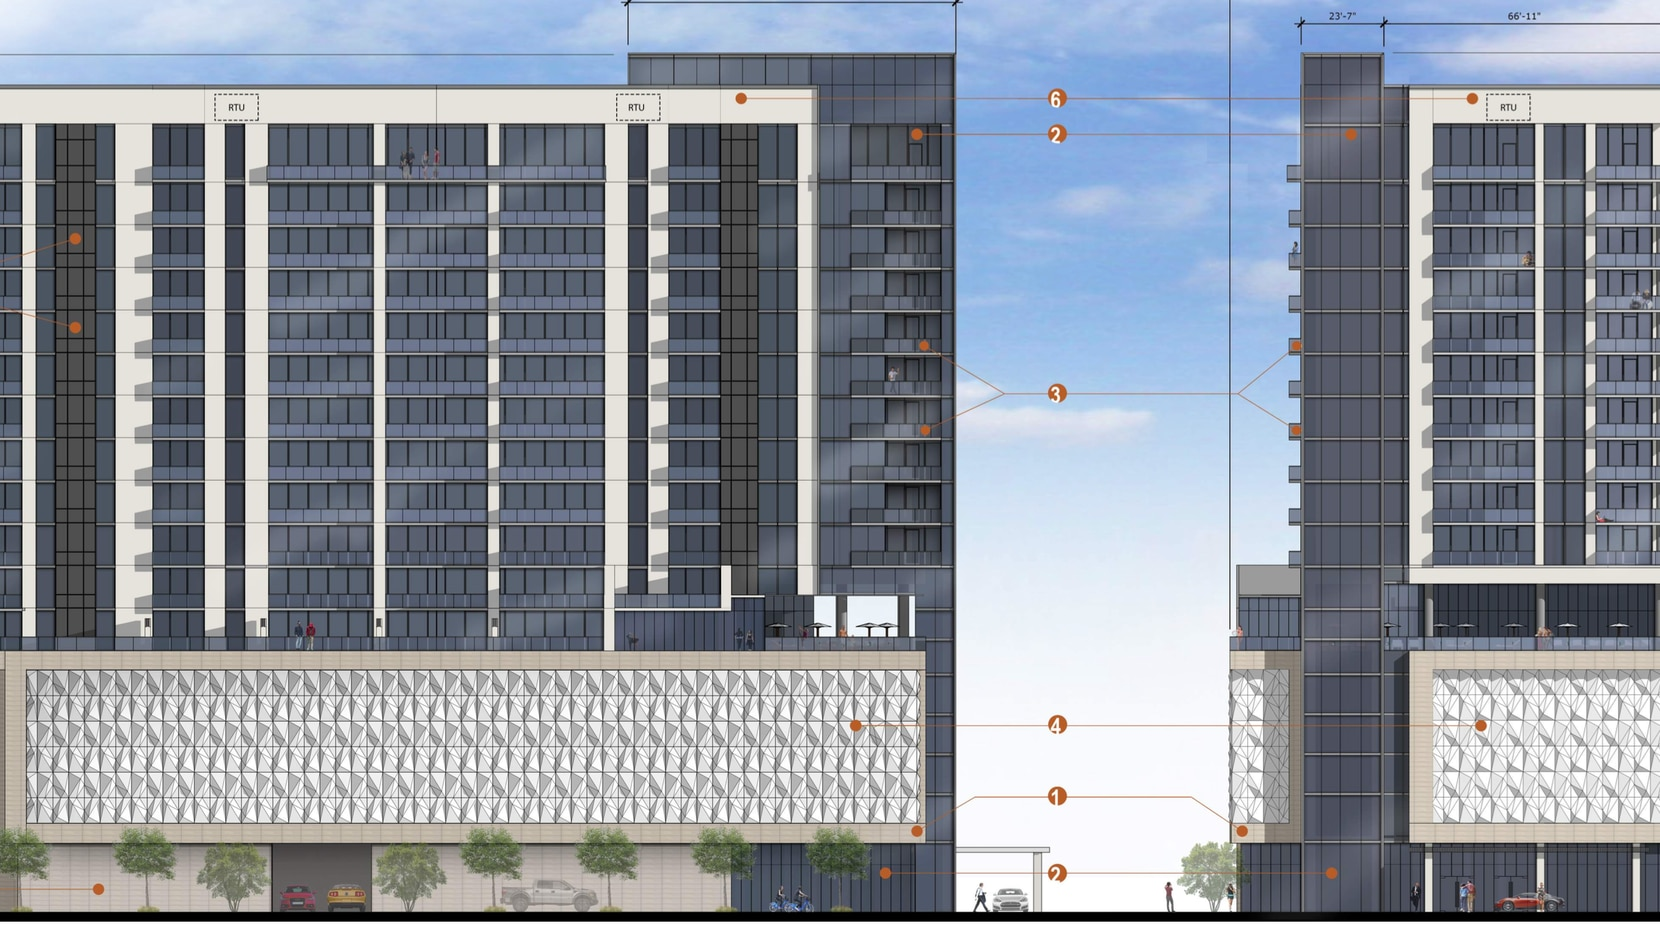 The 17-story Star House apartment tower in Frisco will be built near the Dallas North Tollway.